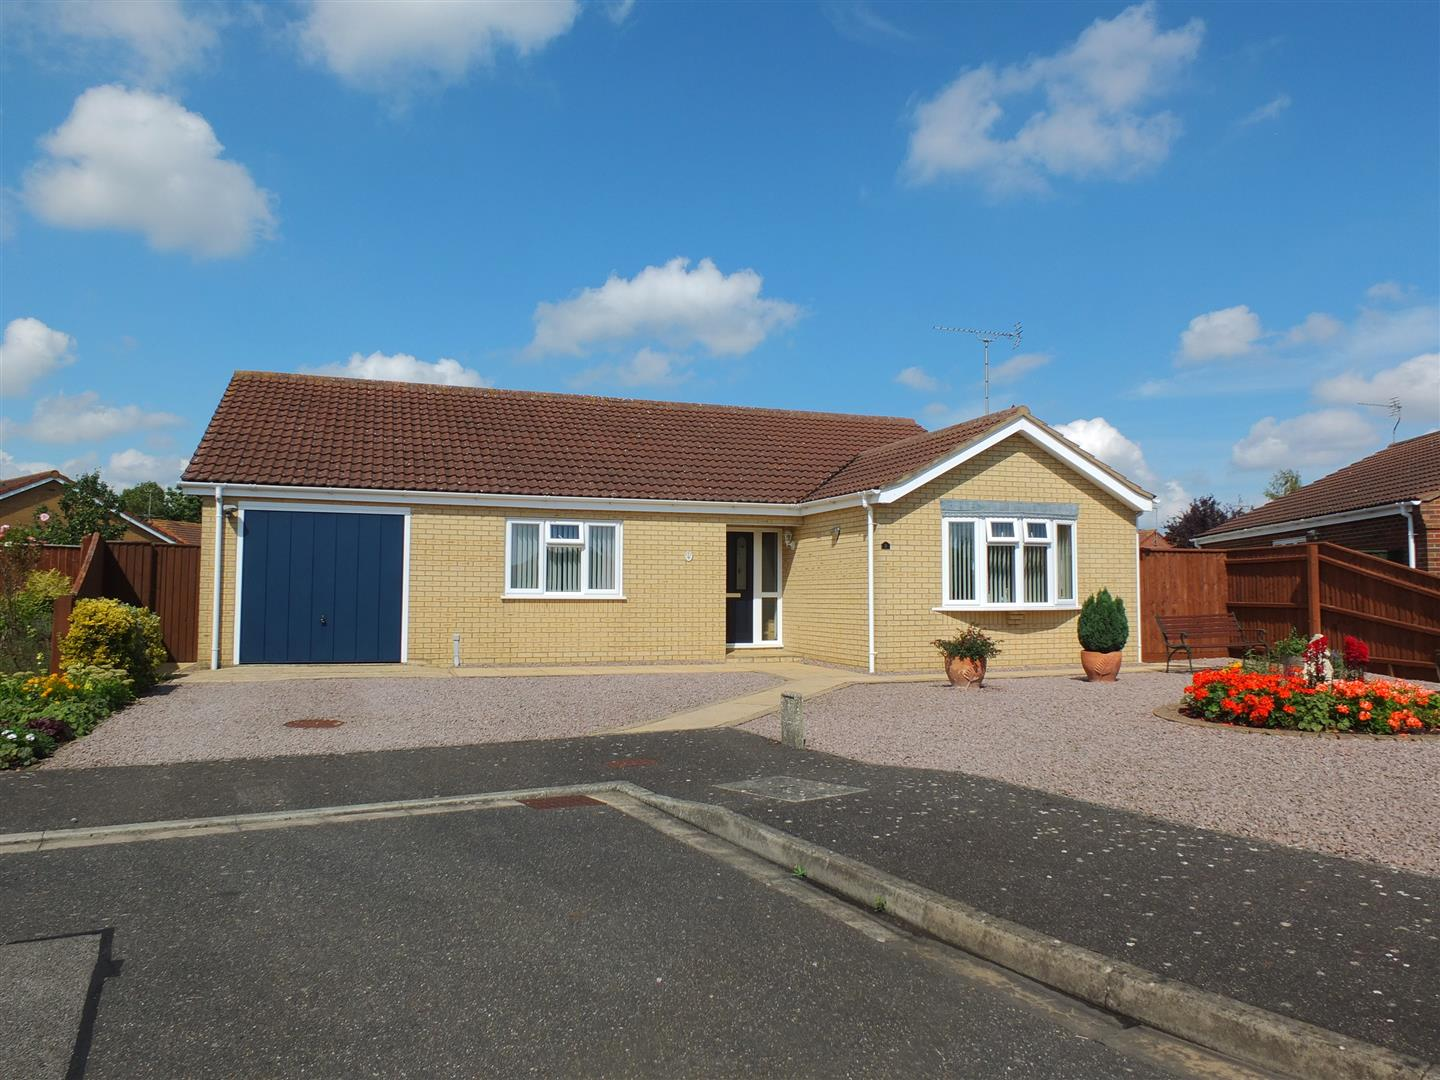 3 bed detached bungalow for sale in Skelton Drive, Long Sutton Spalding, PE12